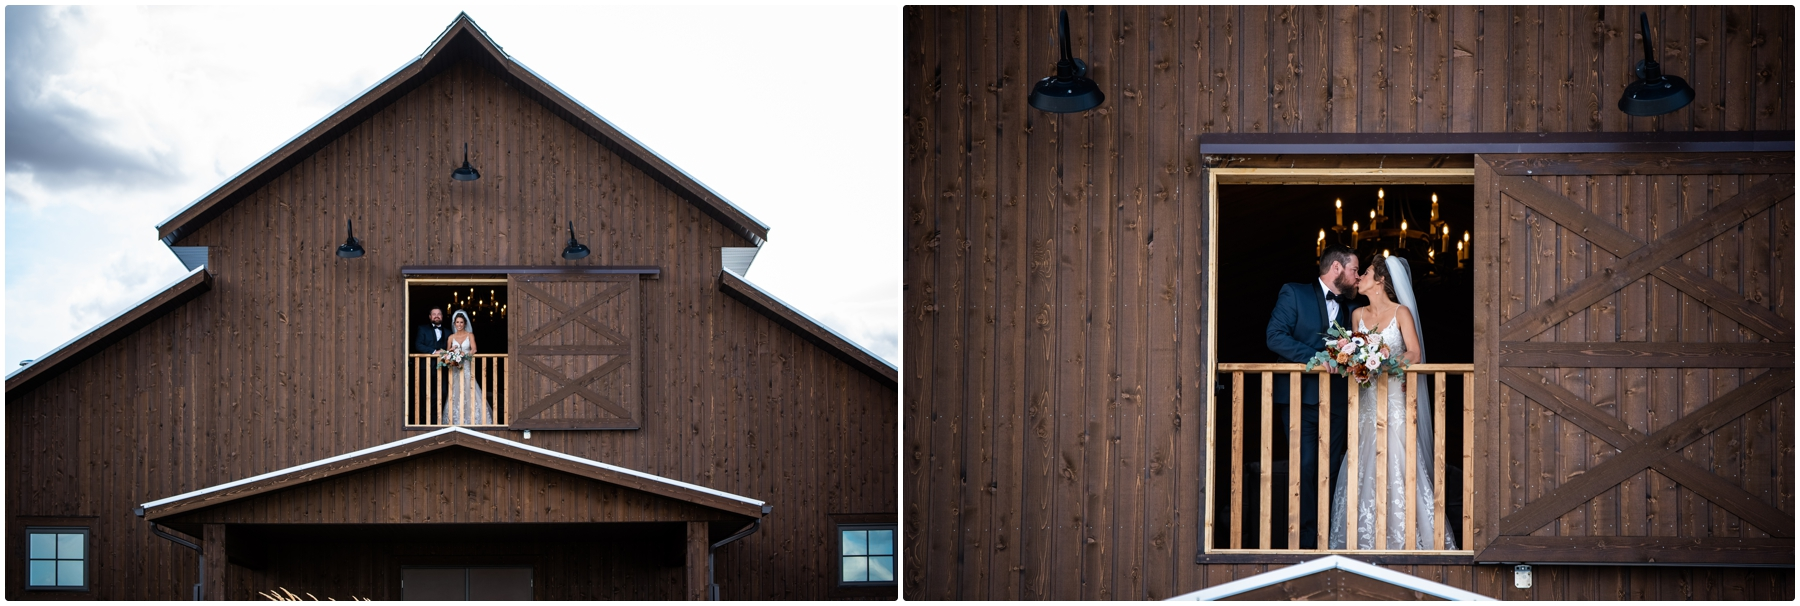 Barn Bride & Groom Photography - Sweet Haven Barn